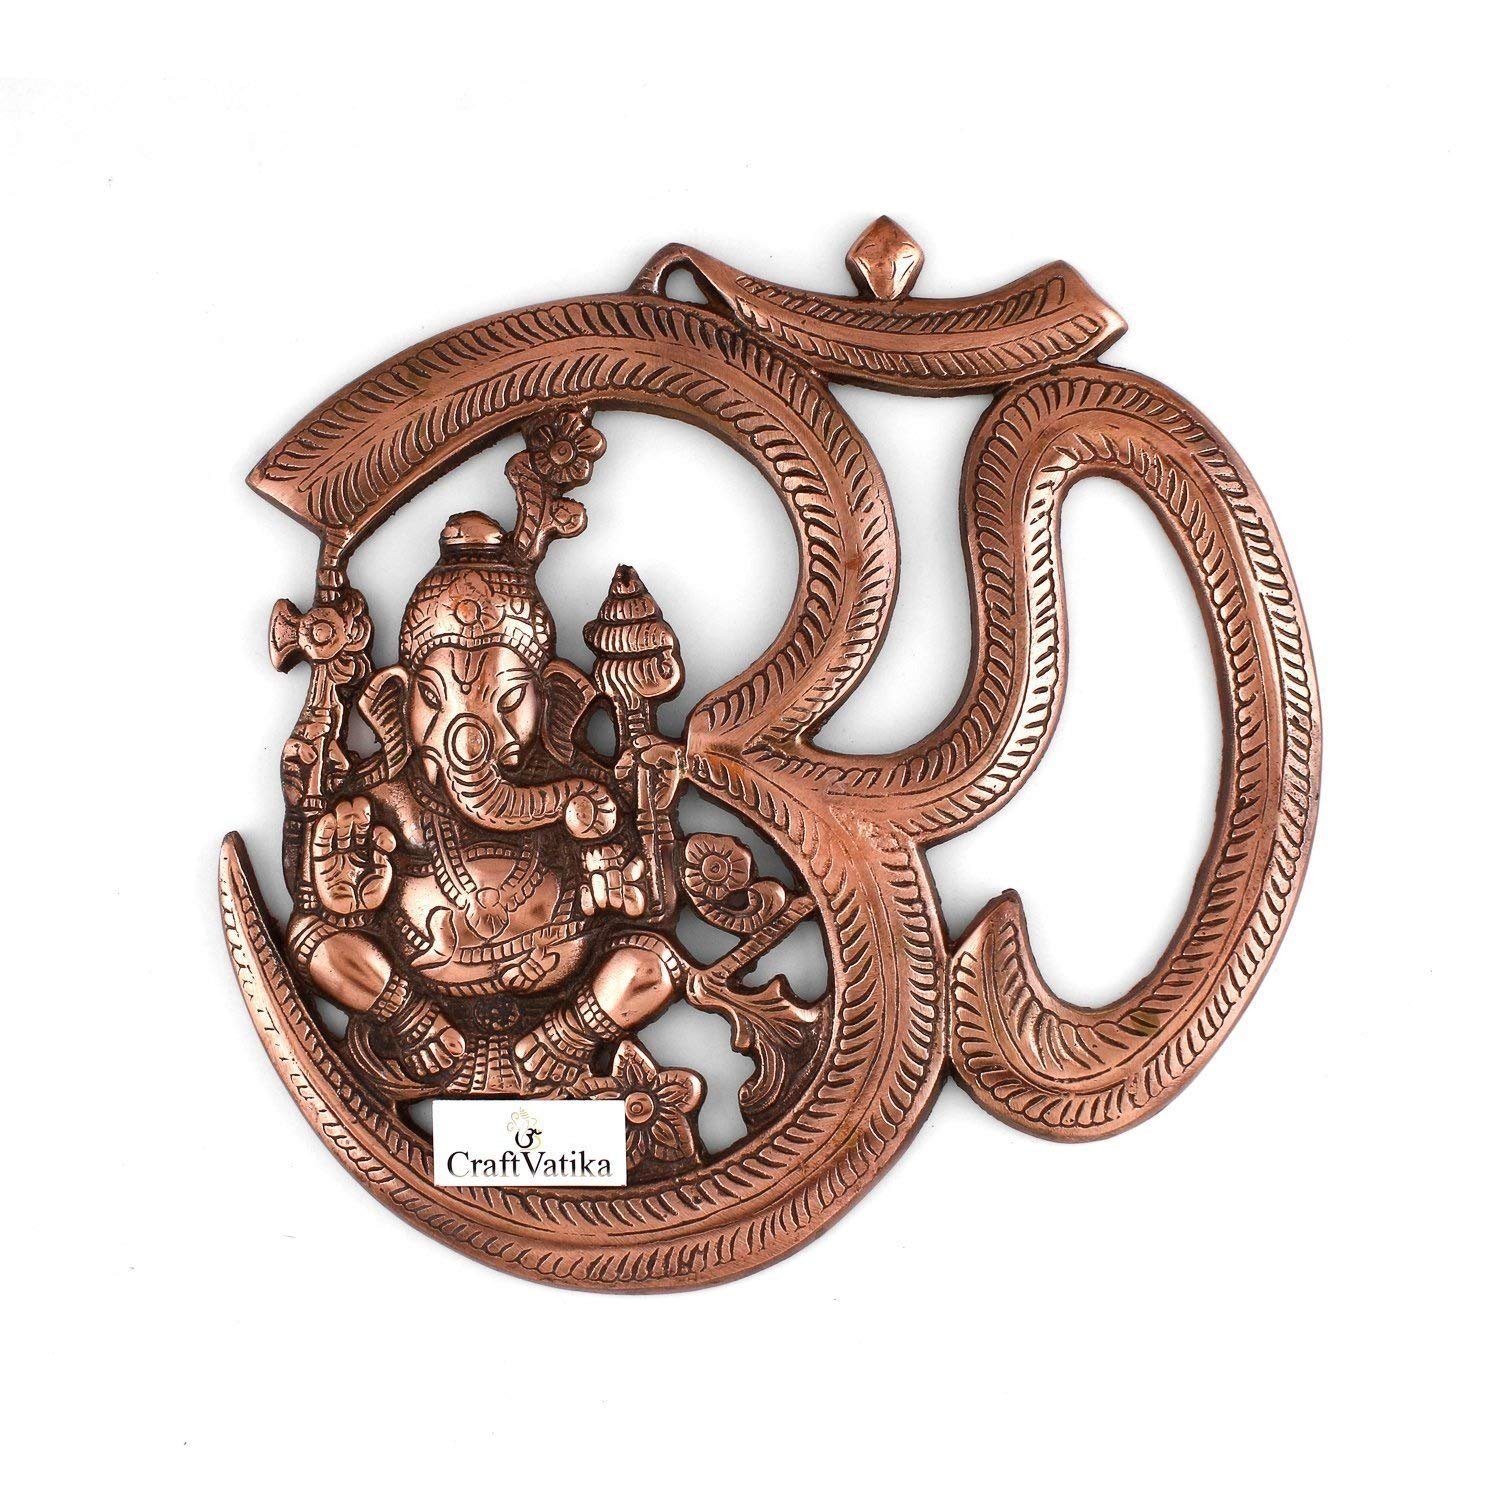 Craftvatika Lord Ganesha OM metal Wall Hanging OM Sign Ganpati scultura maschera da parete decorativo GMW106